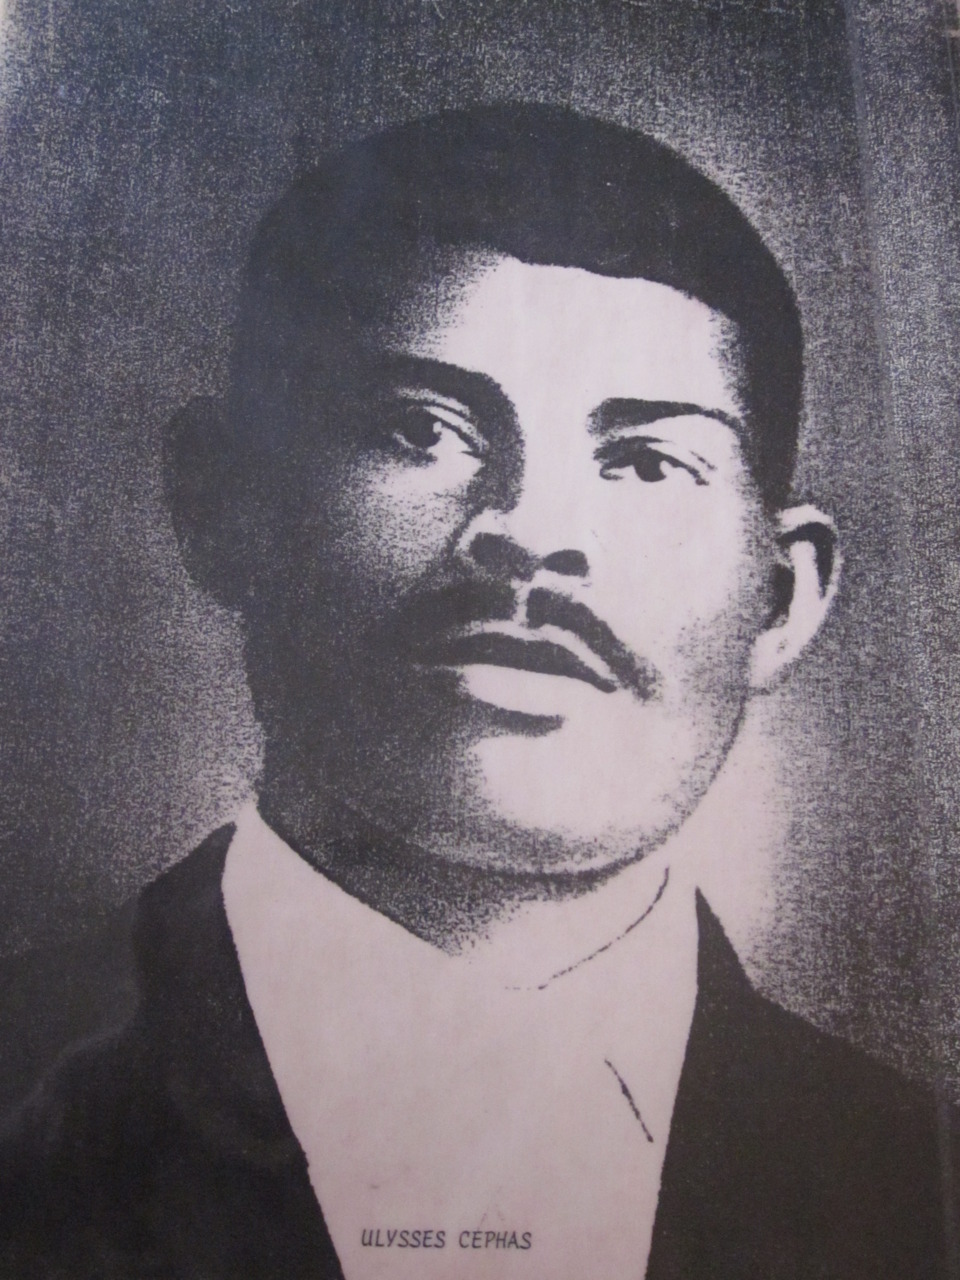 Ulysses Cephas was the son of former slaves and became an independent business owner and influential community member.